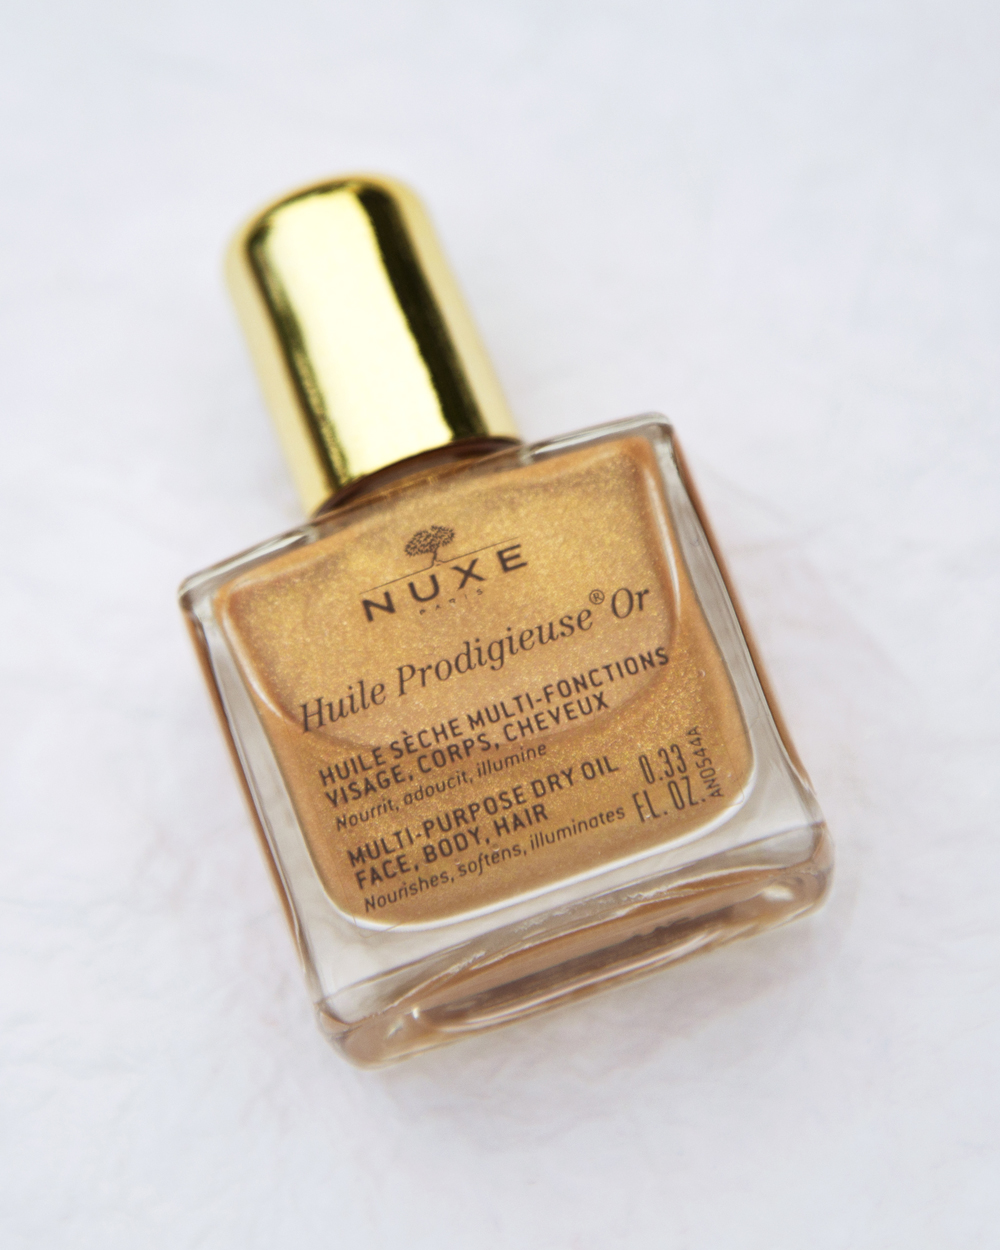 Nuxe Shimmering Dry Oil Huile Prodigieuse® OR